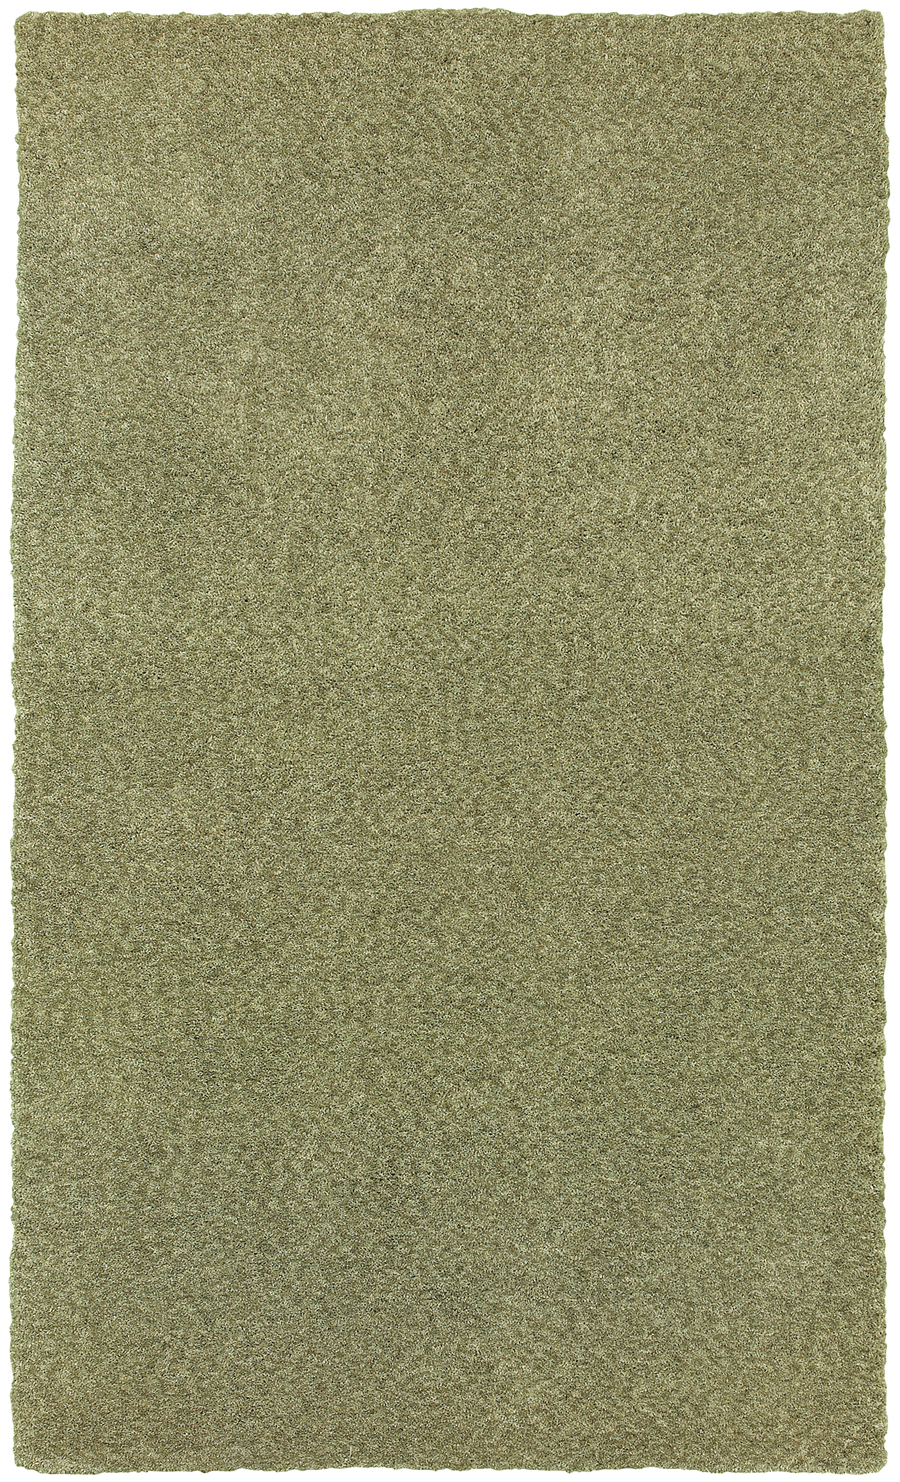 Oriental Weavers Sphinx Heavenly 73403 Rug